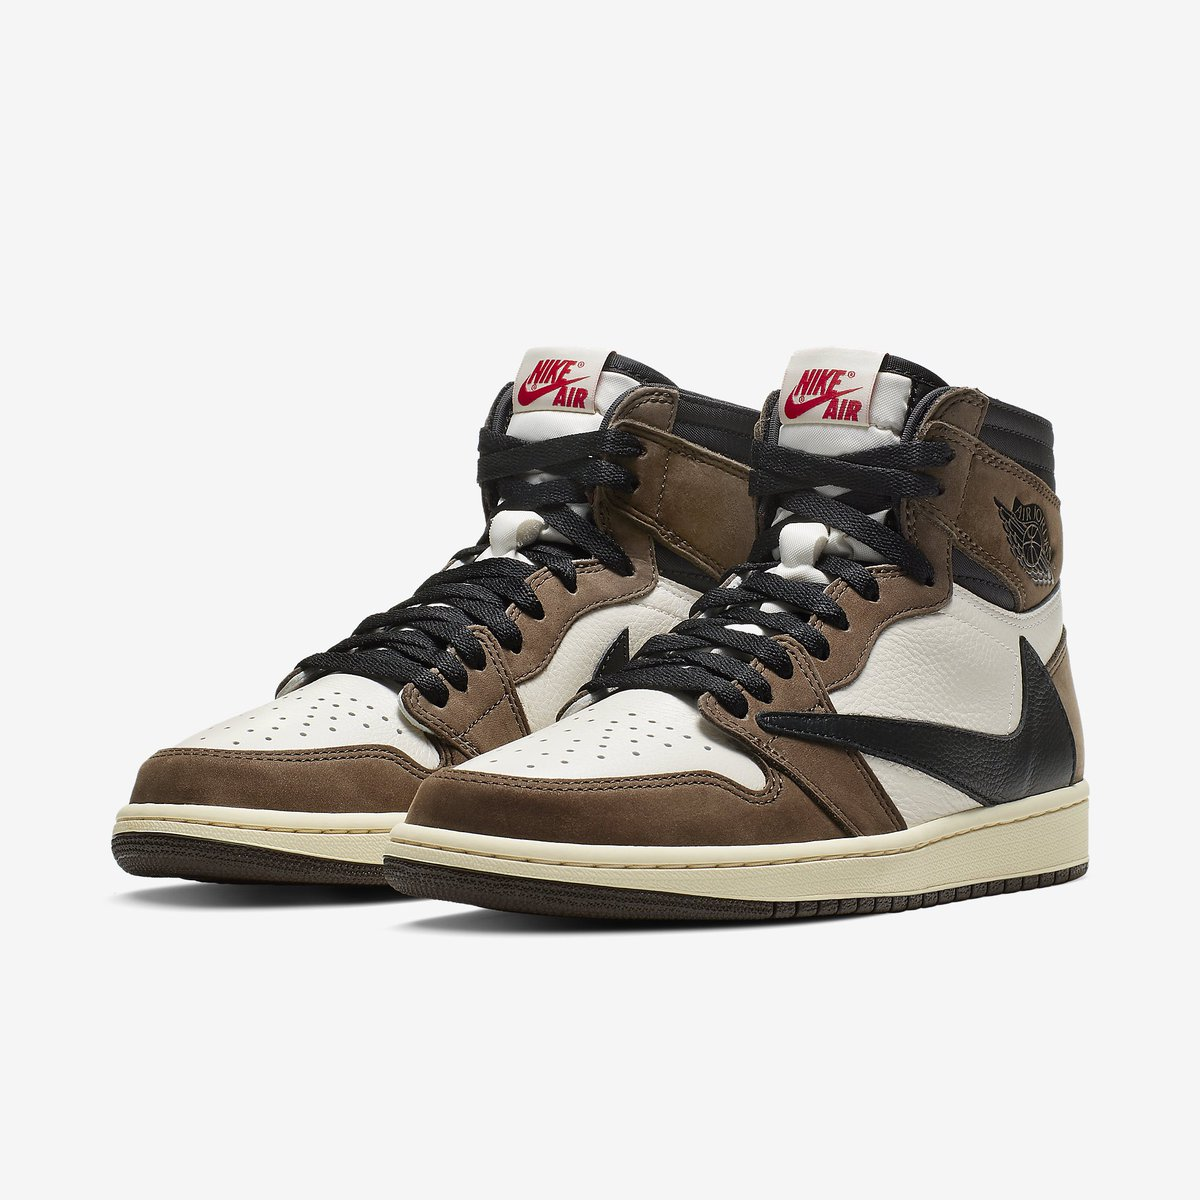 cheap for discount dad82 80198 Complex Sneakers on Twitter: